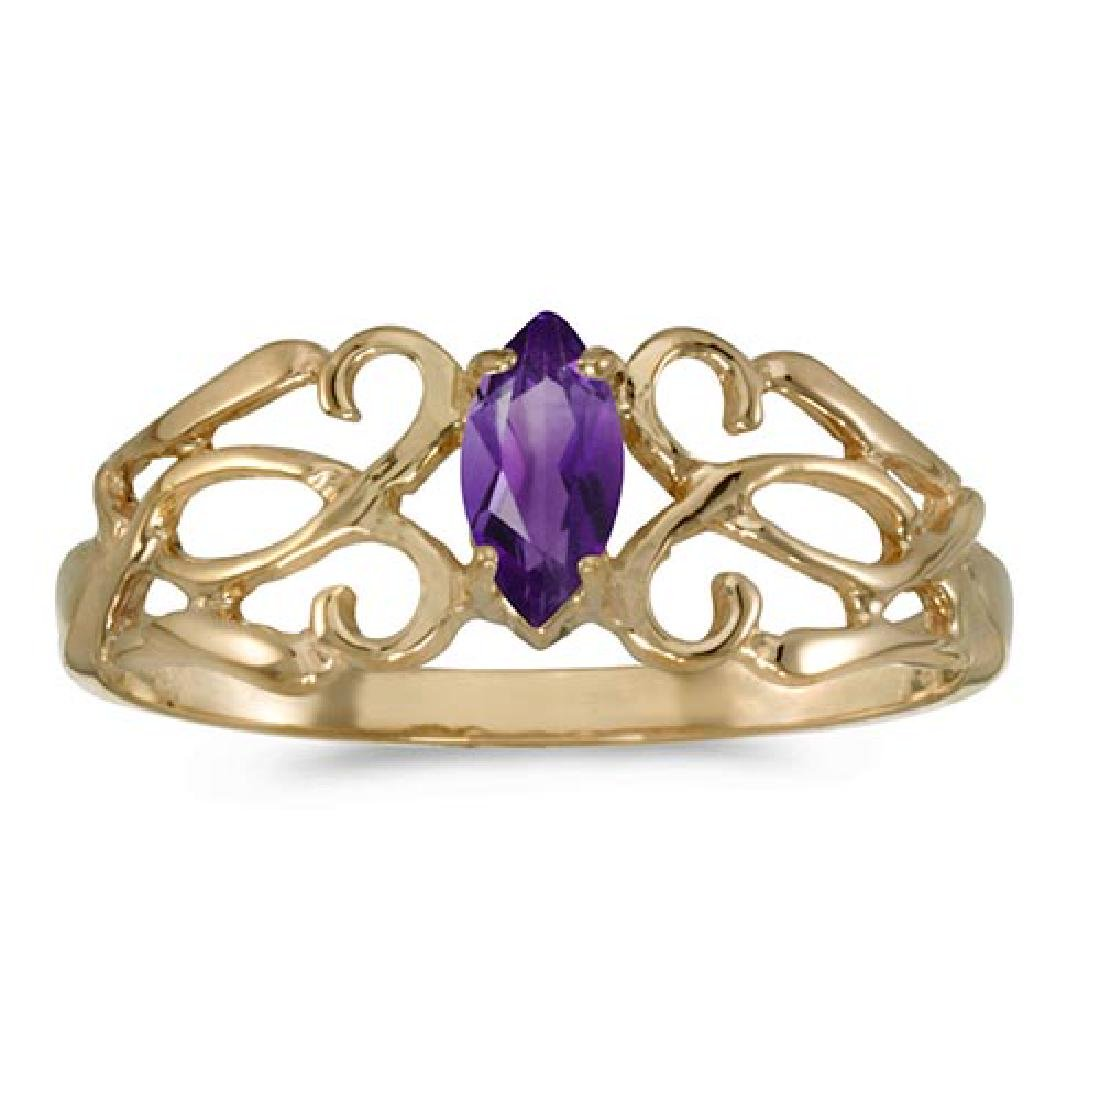 Certified 10k Yellow Gold Marquise Amethyst Filagree Ri